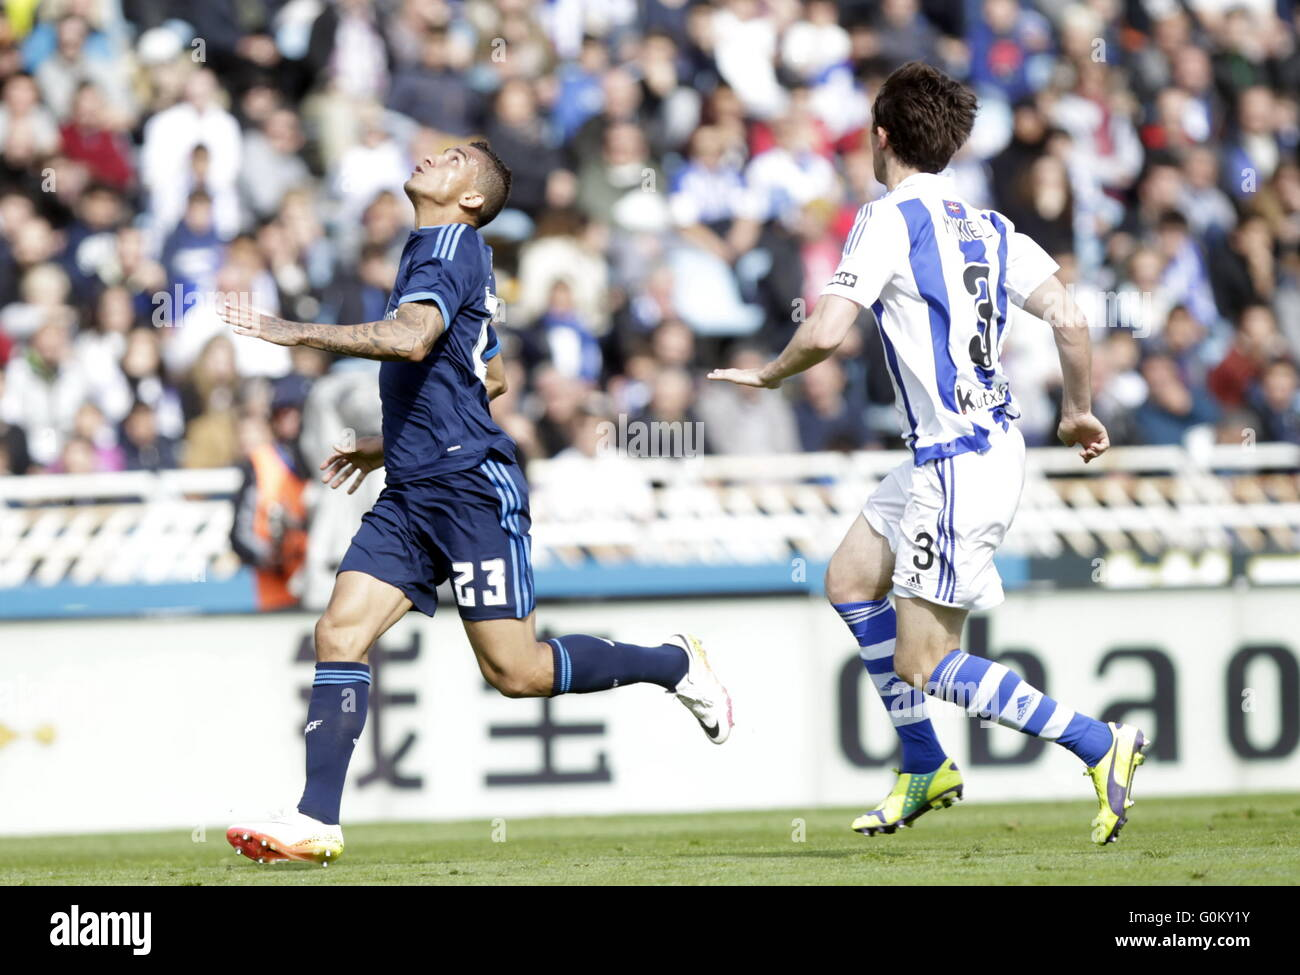 Danilo of Real Madrid during the La Liga match espagolde Real Sociedad - Real Madrid at the Anoeta Stadium - Stock Image